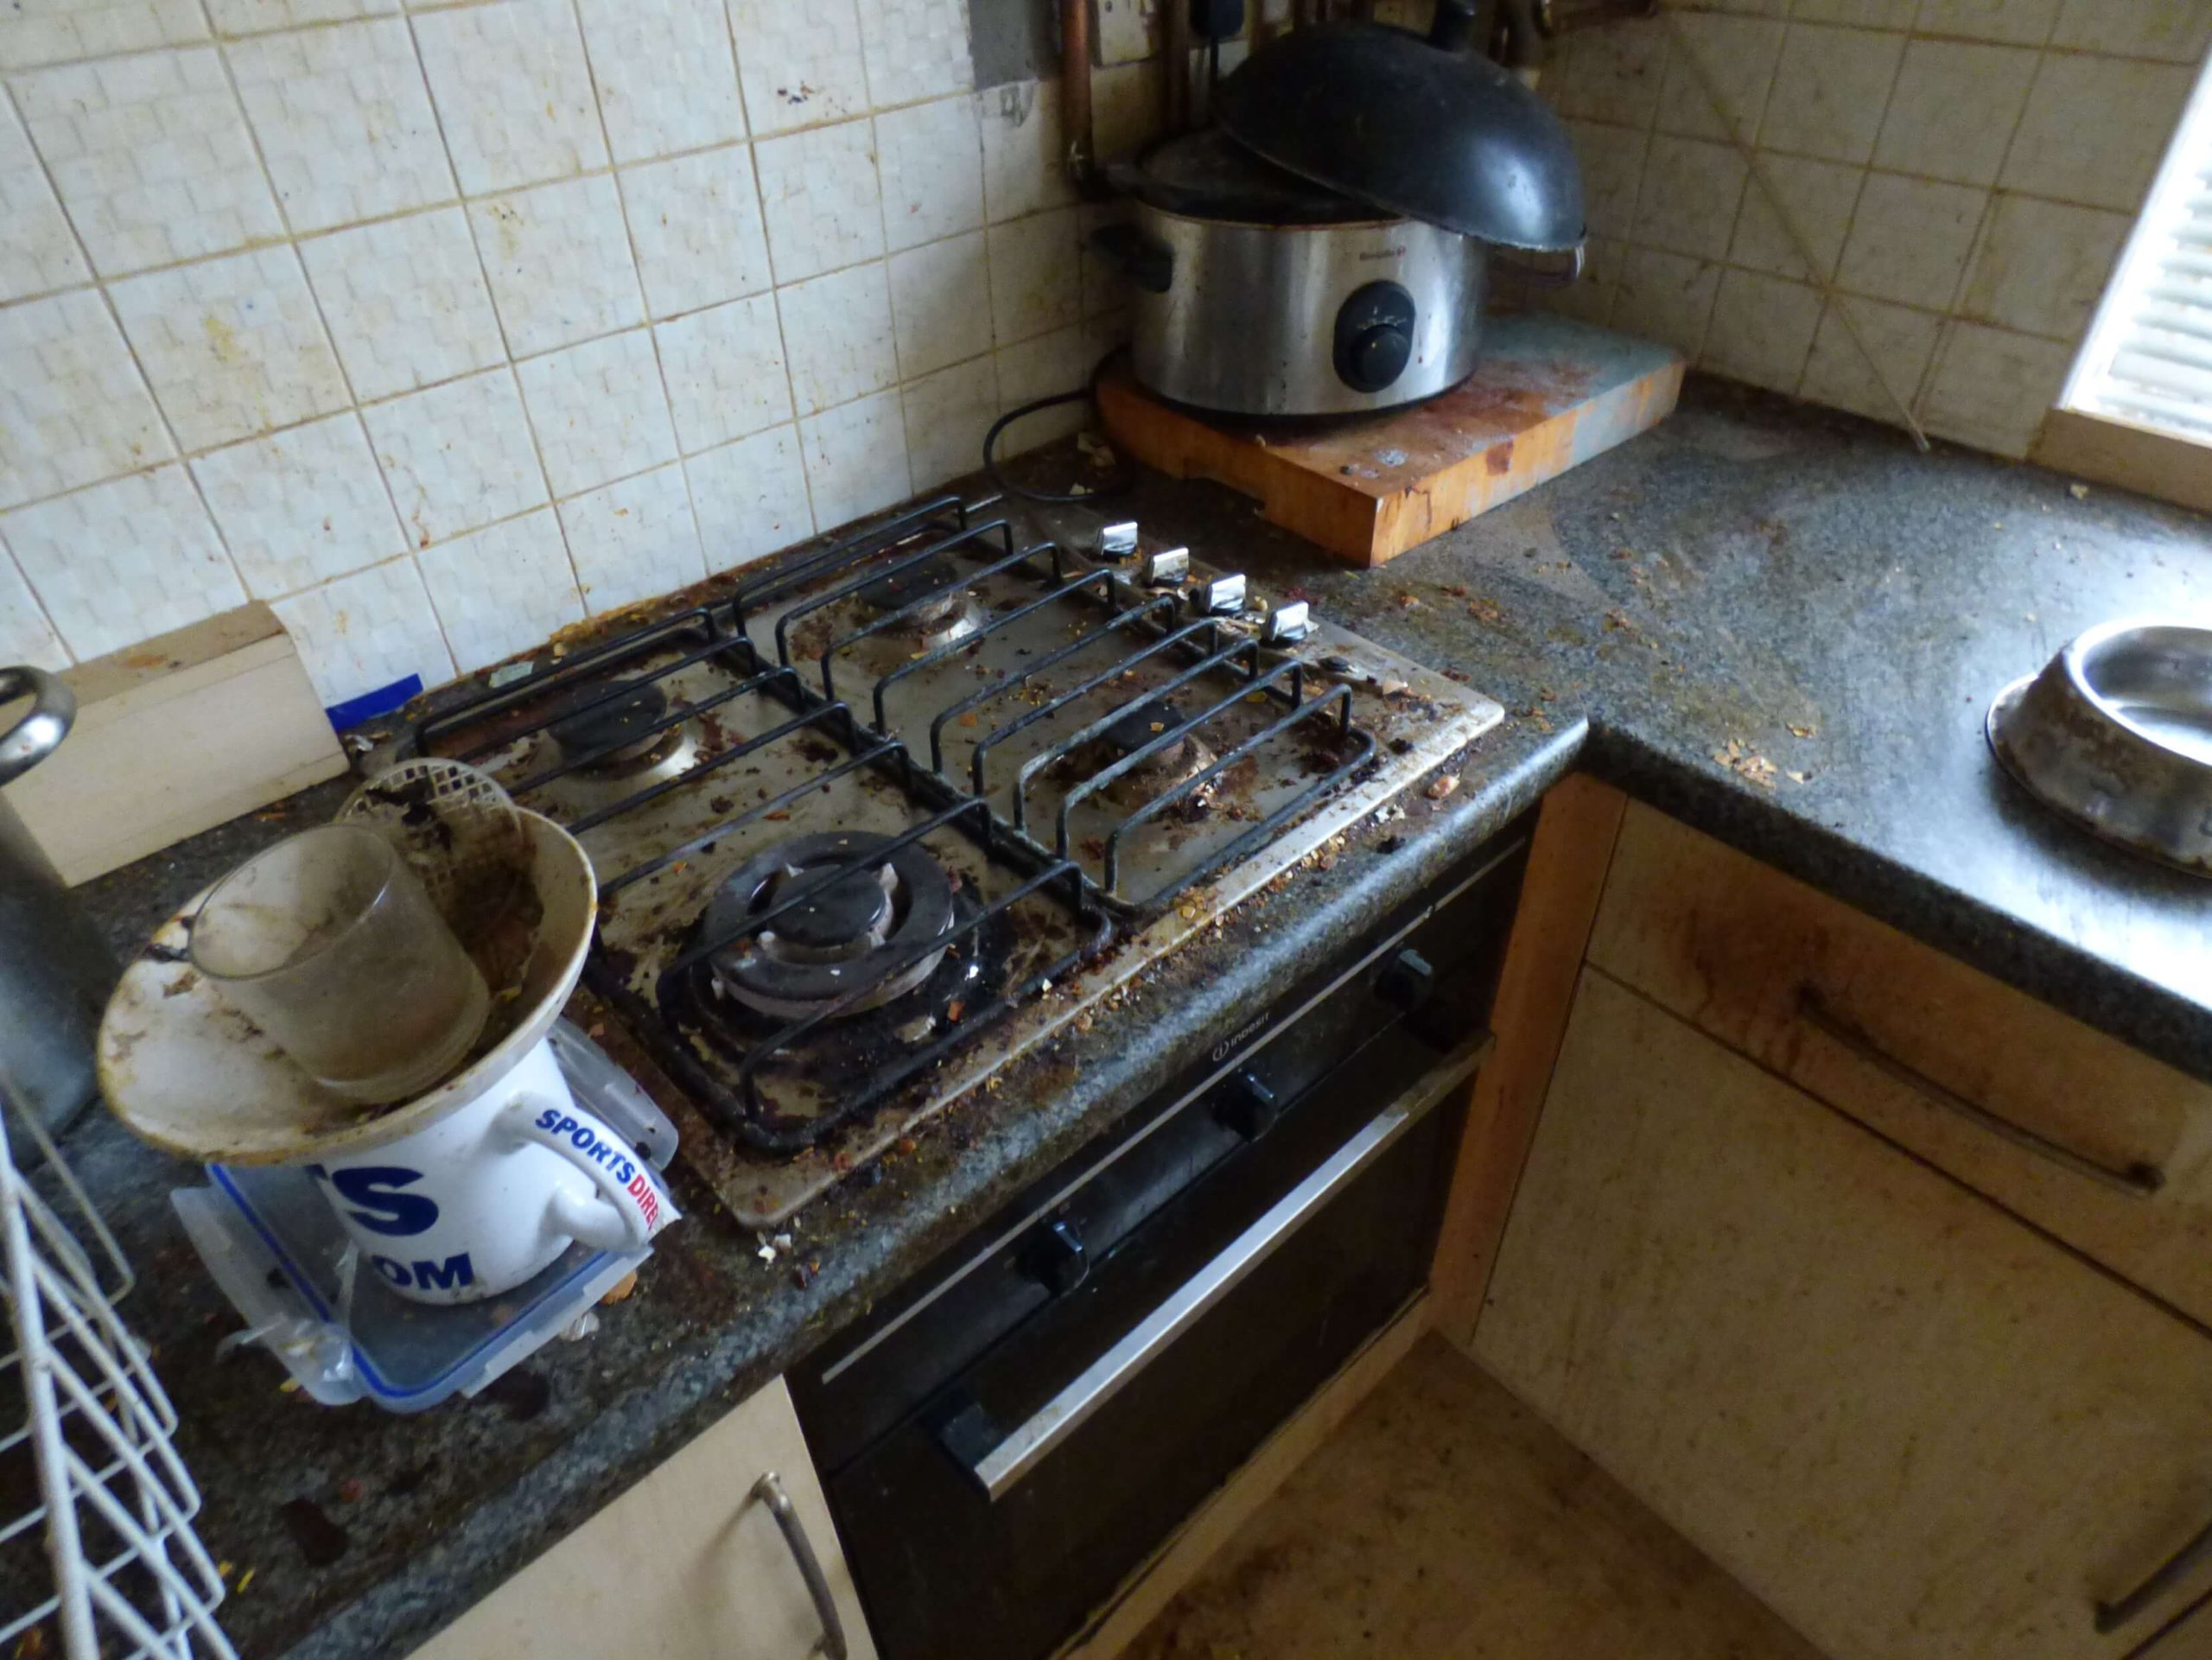 kitchen in poor state - selling a house in bad condition